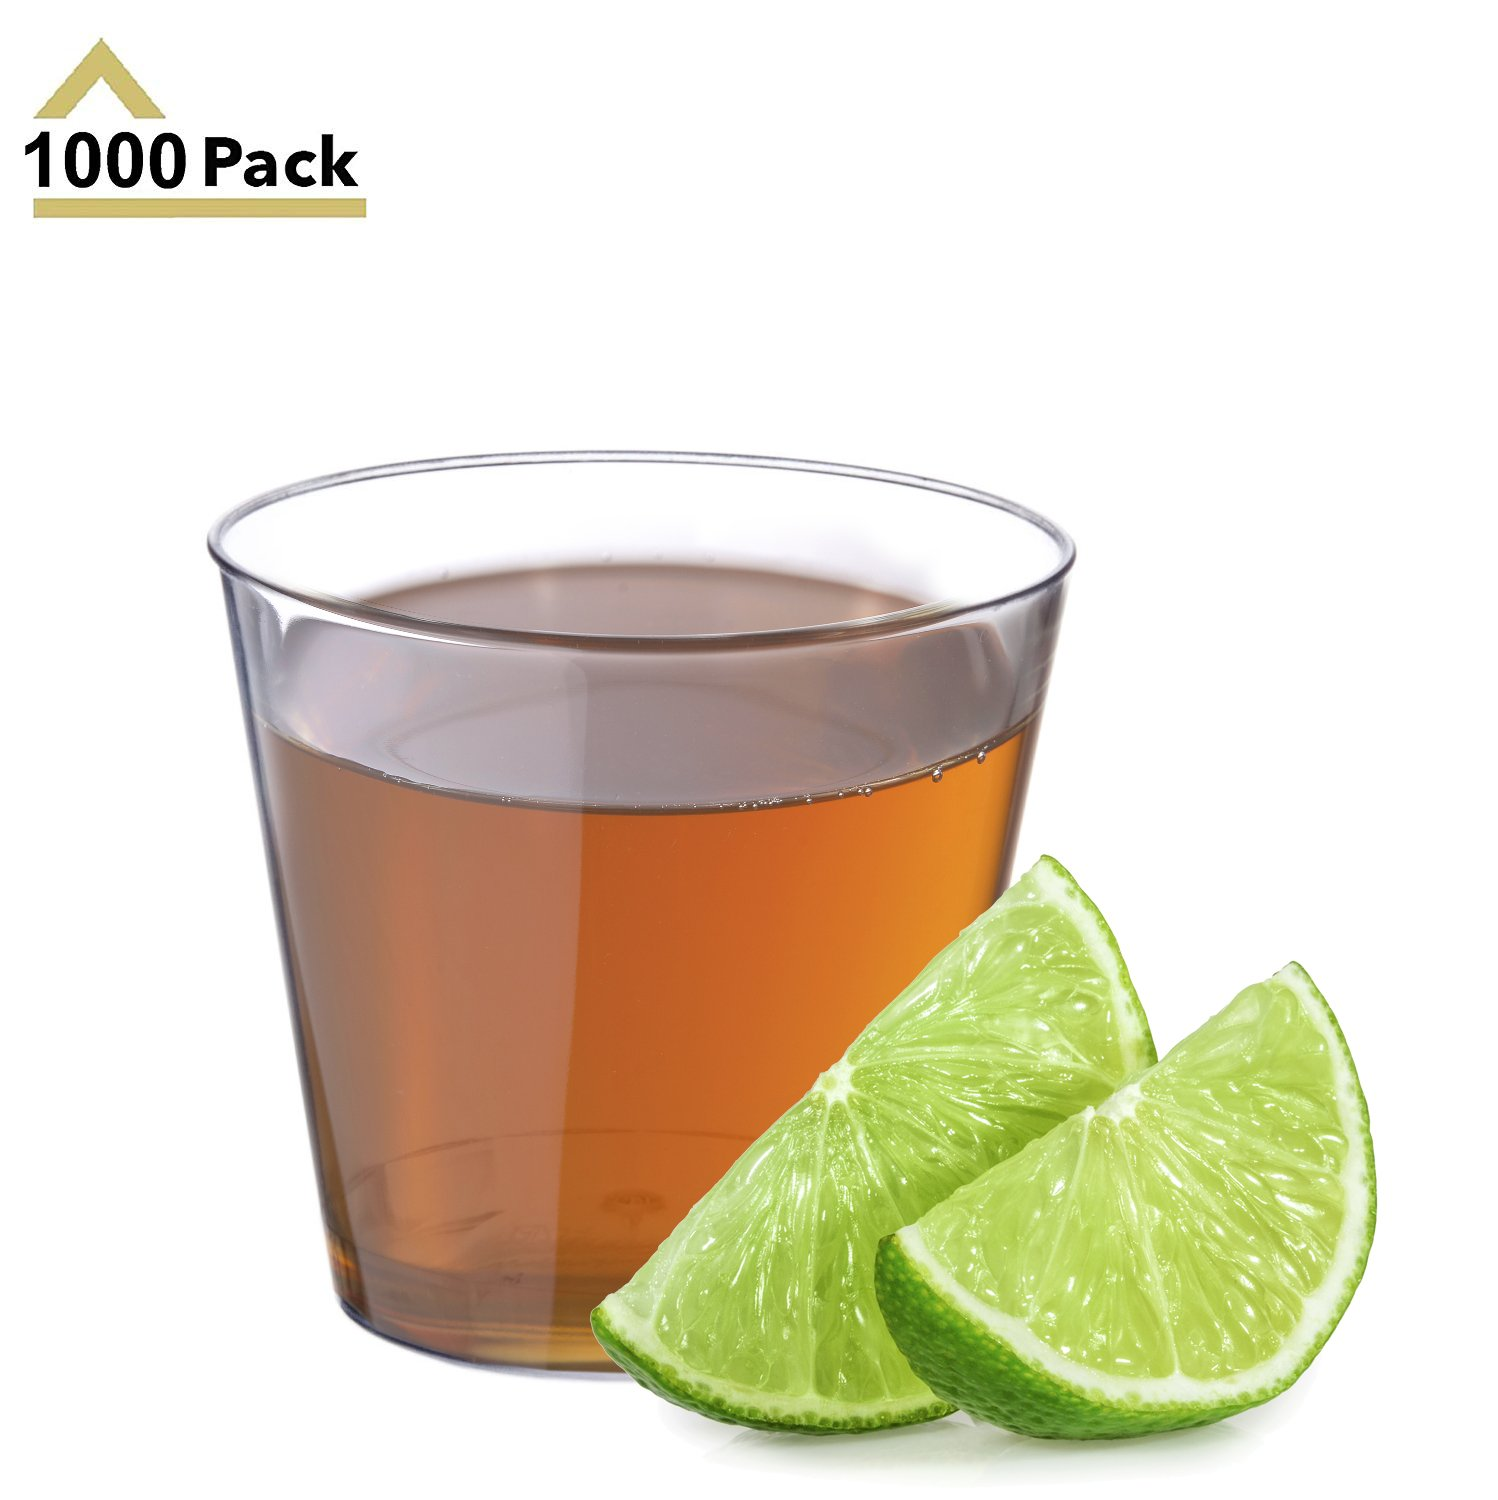 1.5oz Clear Plastic Shot Glasses 1000-Count Disposable Small Party Cups for Jello Shots, Dips, Sauces, Condiments, Wine Tasting, Food and Drink Samples - Stock Your Home